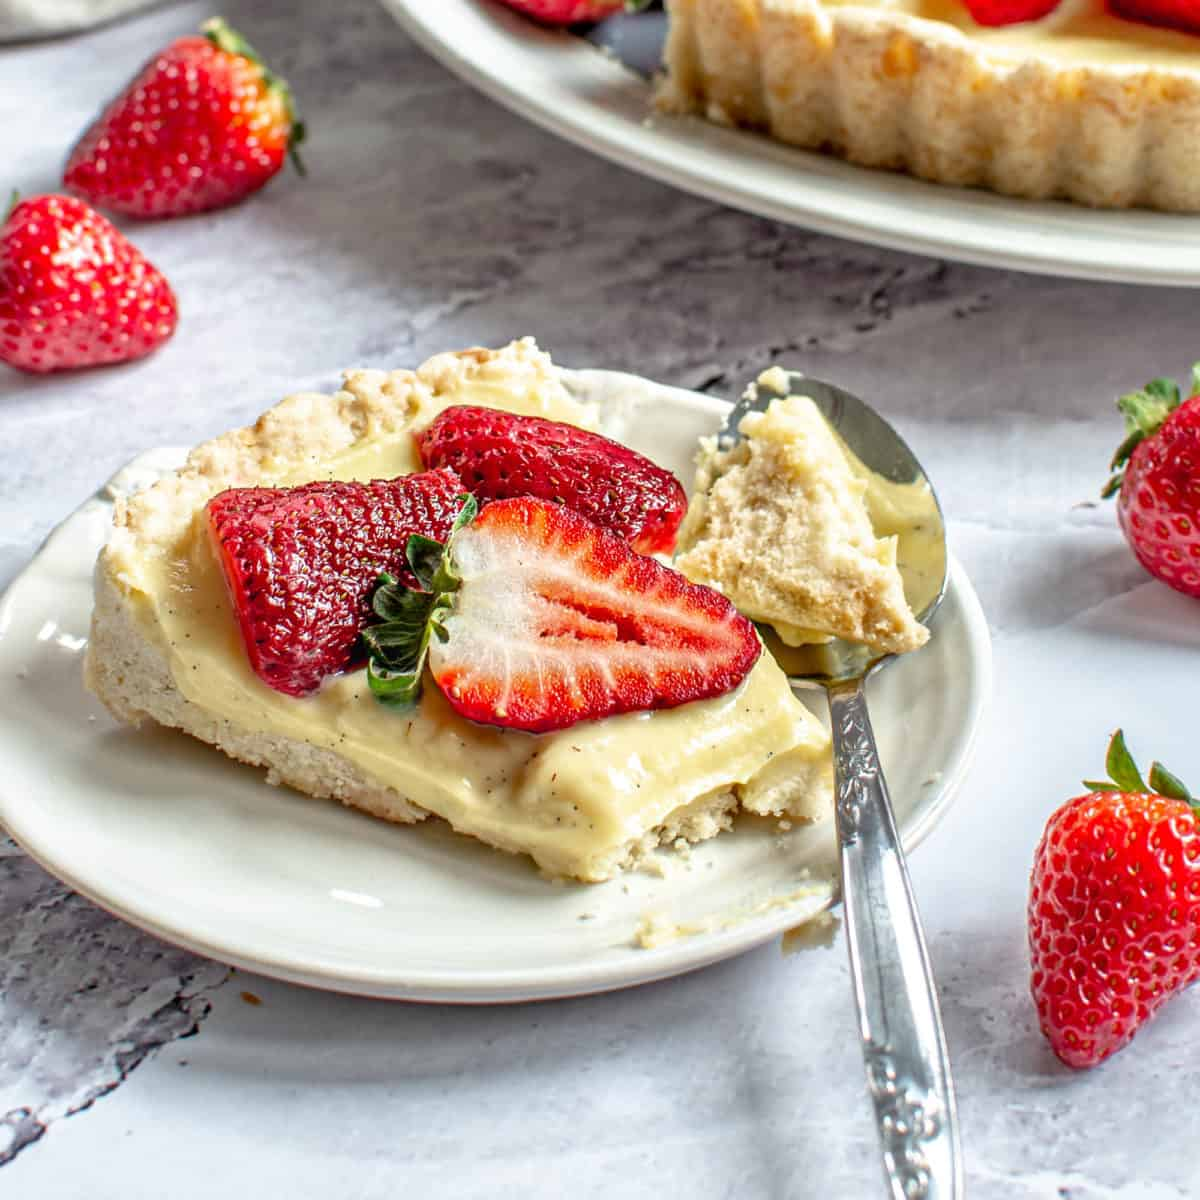 A slice of strawberry custard tart on a plate with a spoon.